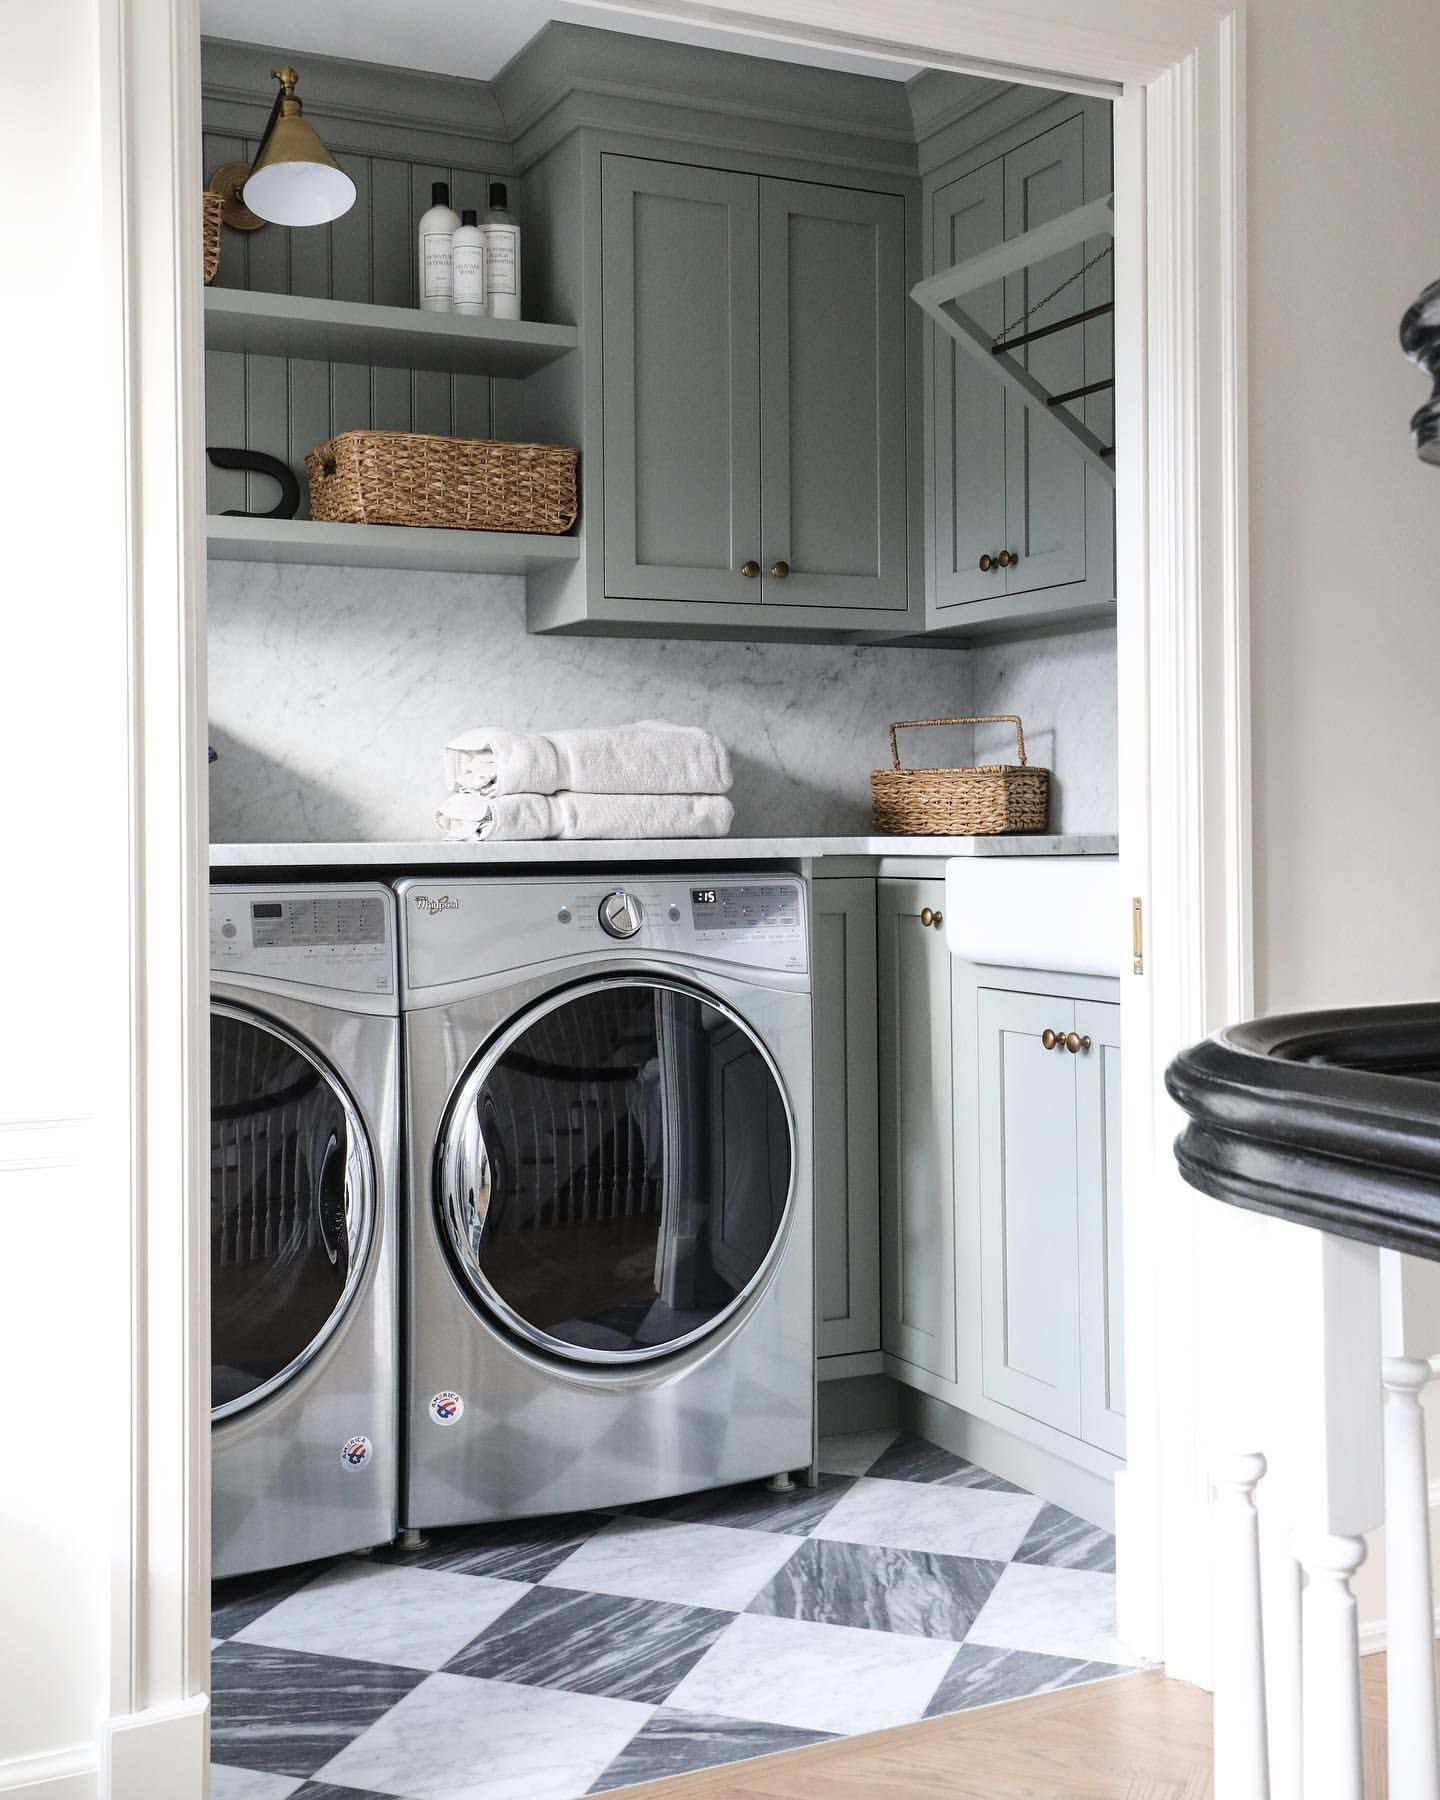 laundry room with whirlpool appliances with sage green cabinets and marble countertops